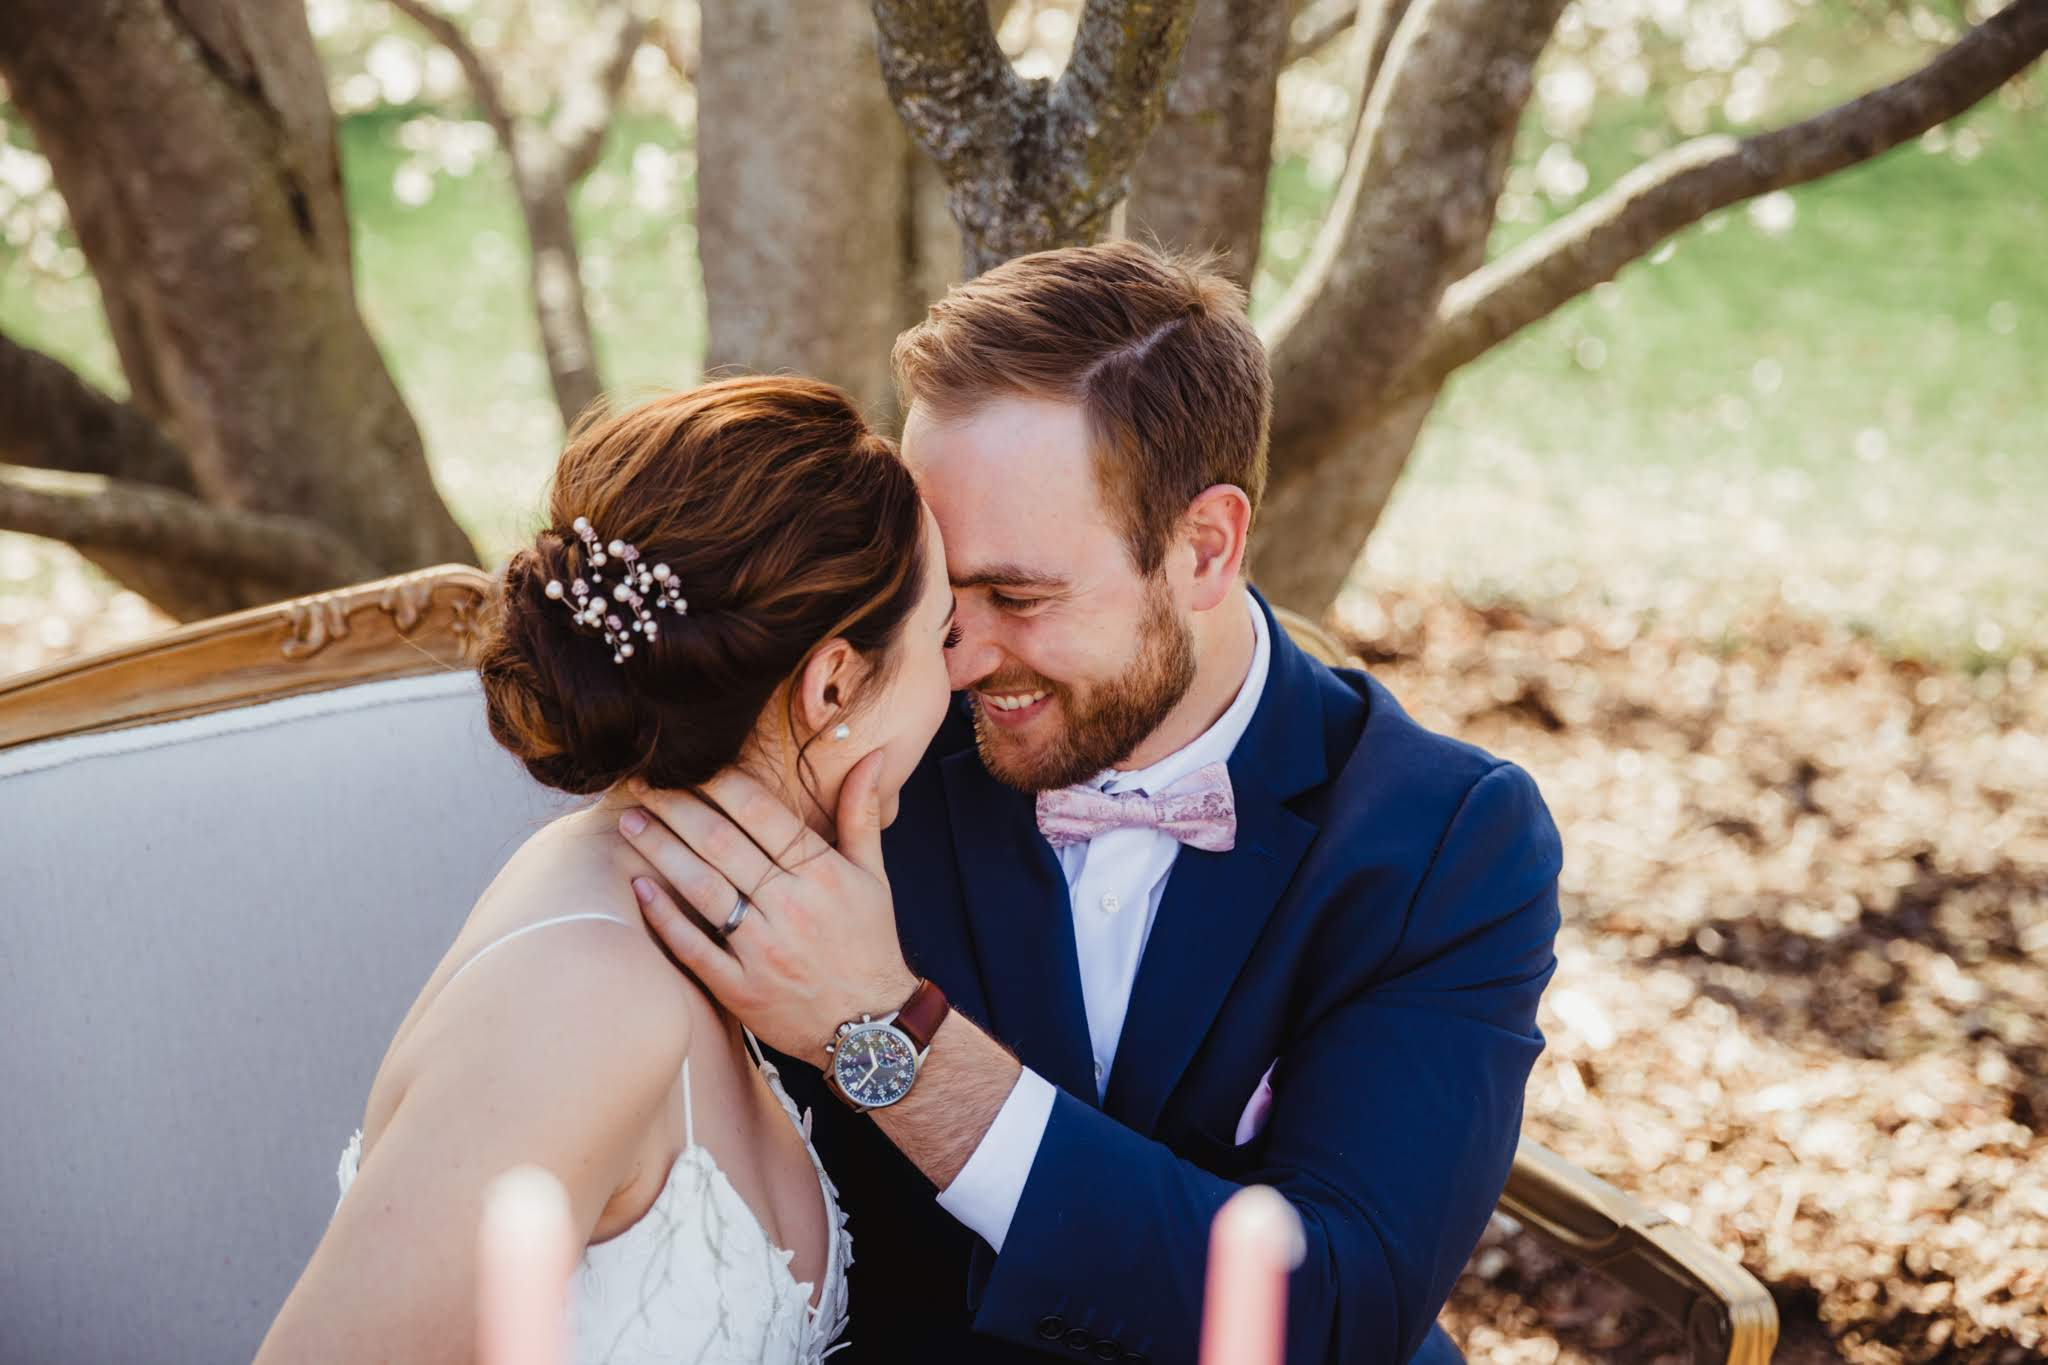 Bride and Groom Snuggling at the Sweetheart Table - Spring Wedding at the UW Madison Arboretum in Madison Wisconsin - Phoenix & Rose Photography